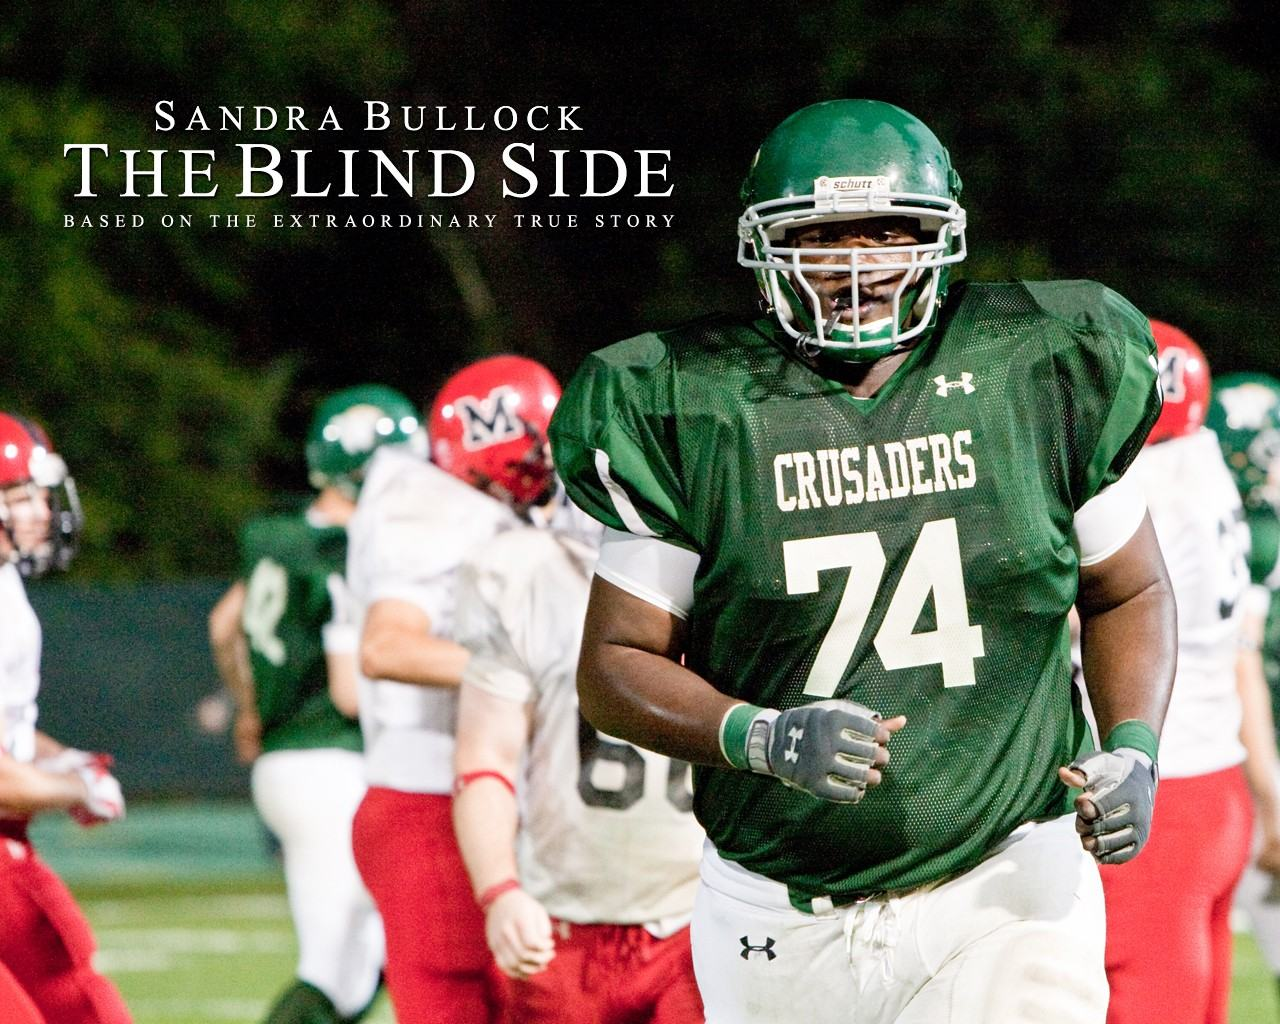 Обои The Blind Side 1280x1024